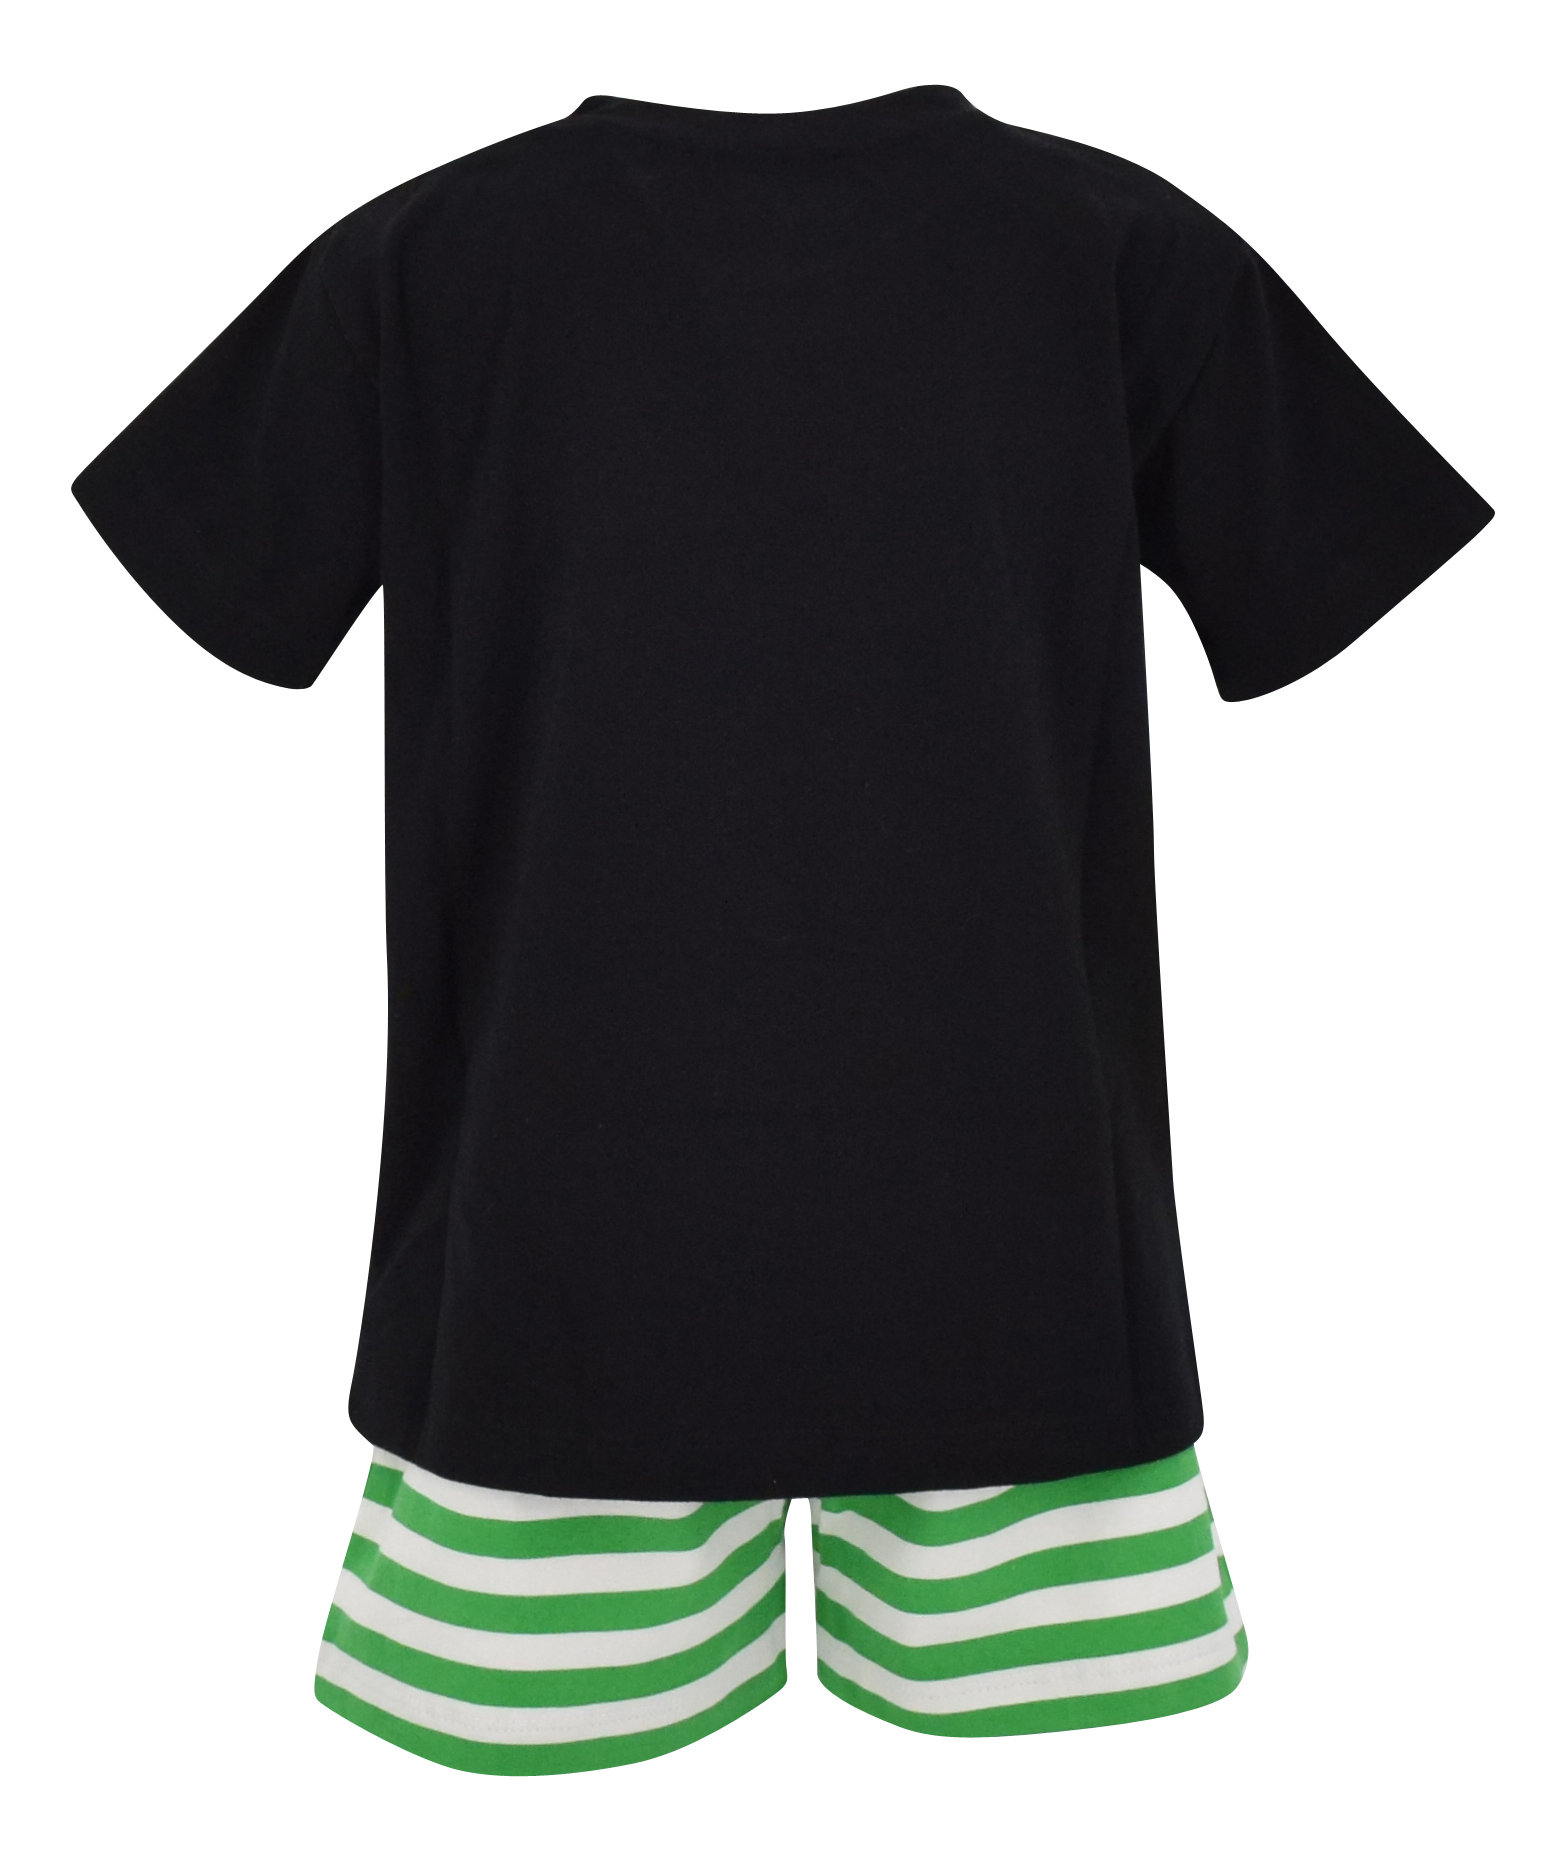 Boys-2-Piece-ST-Patricks-Day-Clover-Outfit-2t-3t-4t-5-6-7-8-Toddler-Kids-Clothes thumbnail 27